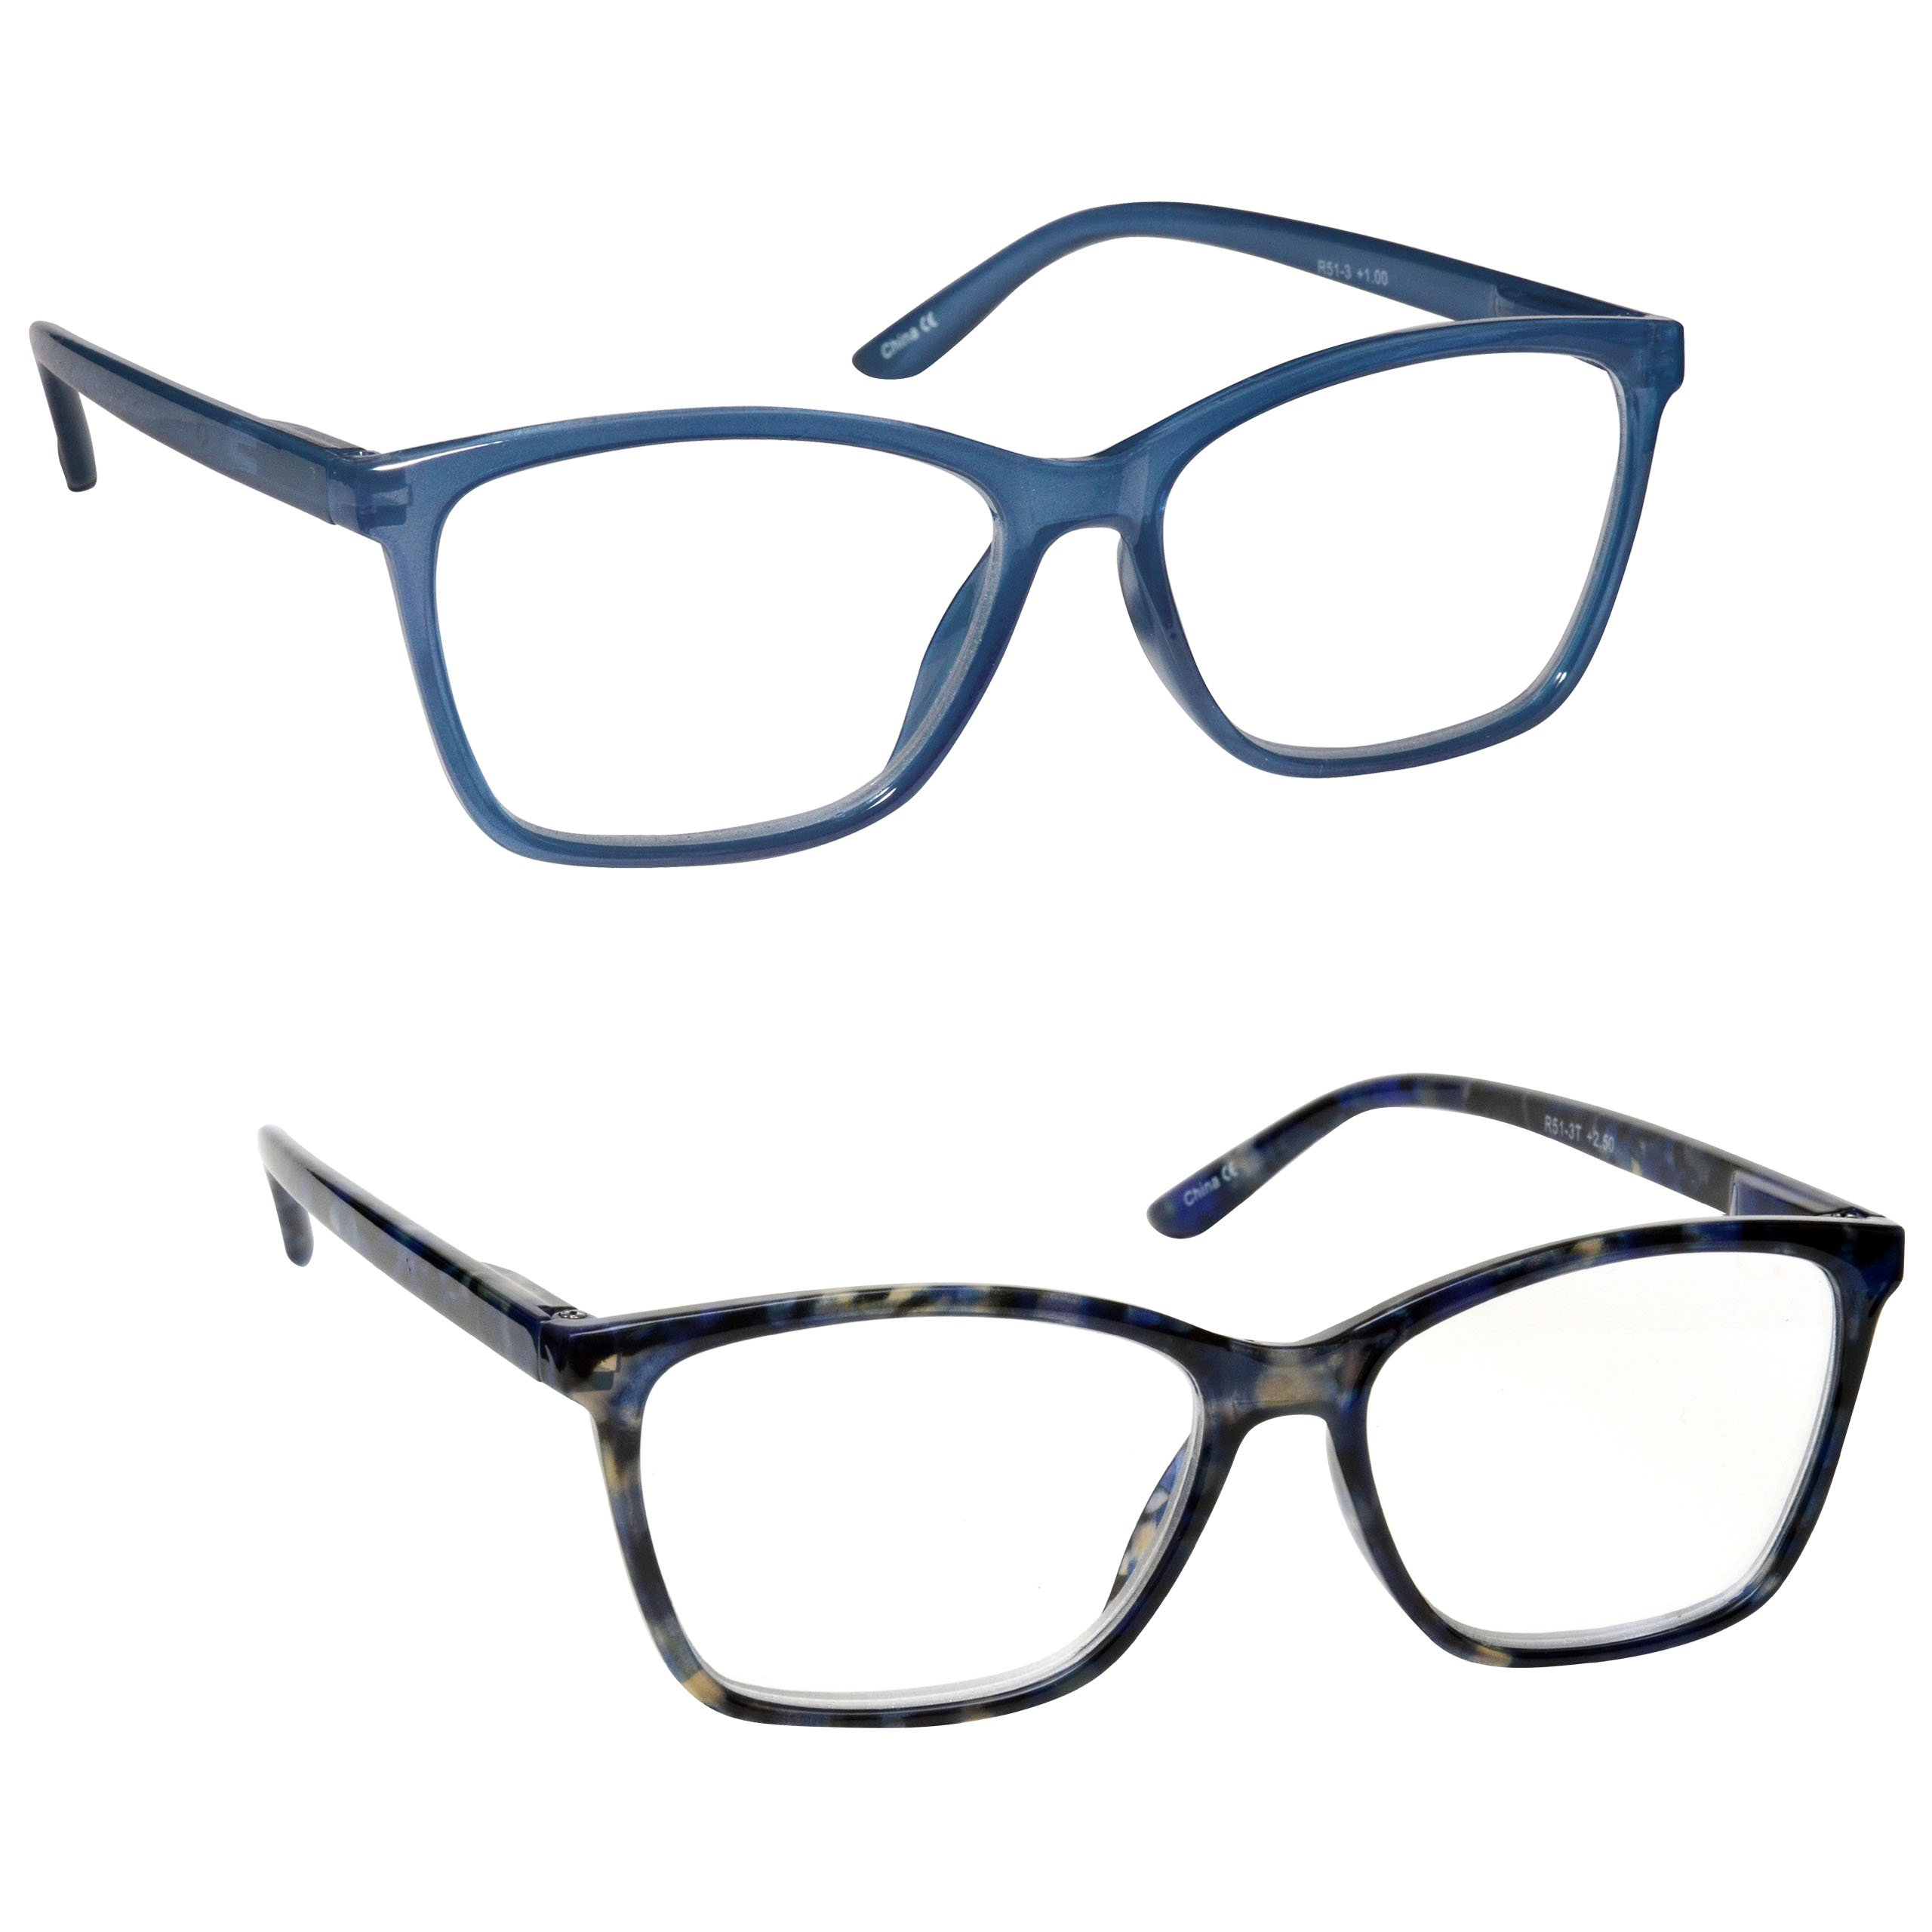 The Reading Glasses Company Bright Blue & Blue Tortoiseshell Readers 2 Pack Large Mens Womens Inc Bag RR51-33T +2.50 by The Reading Glasses Company